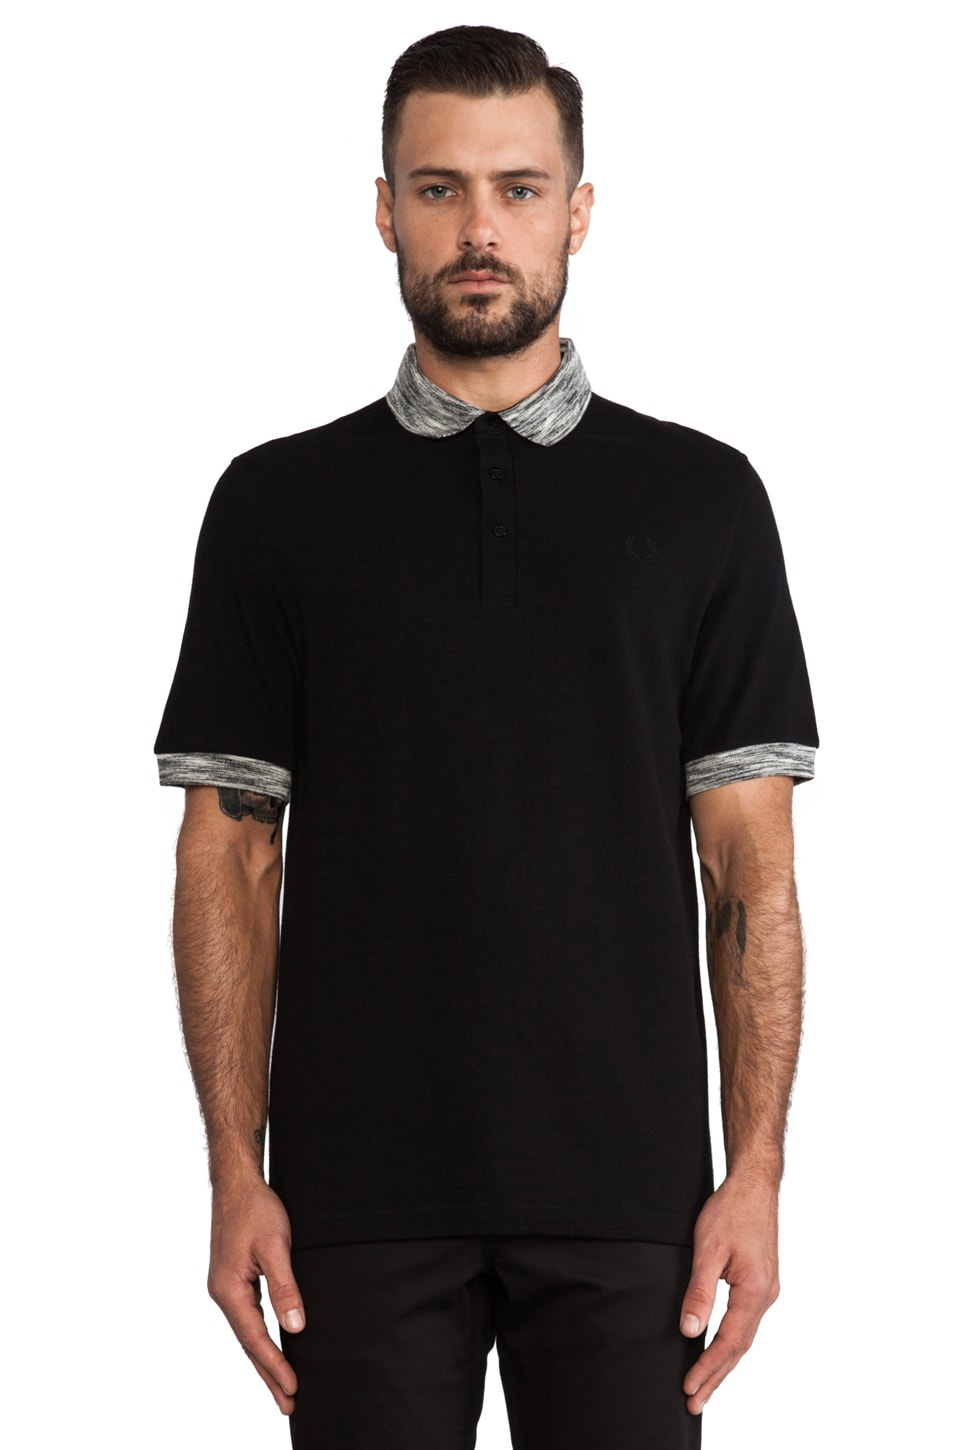 Fred Perry Laurel Wreath Misregistered Tipping Shirt in Black